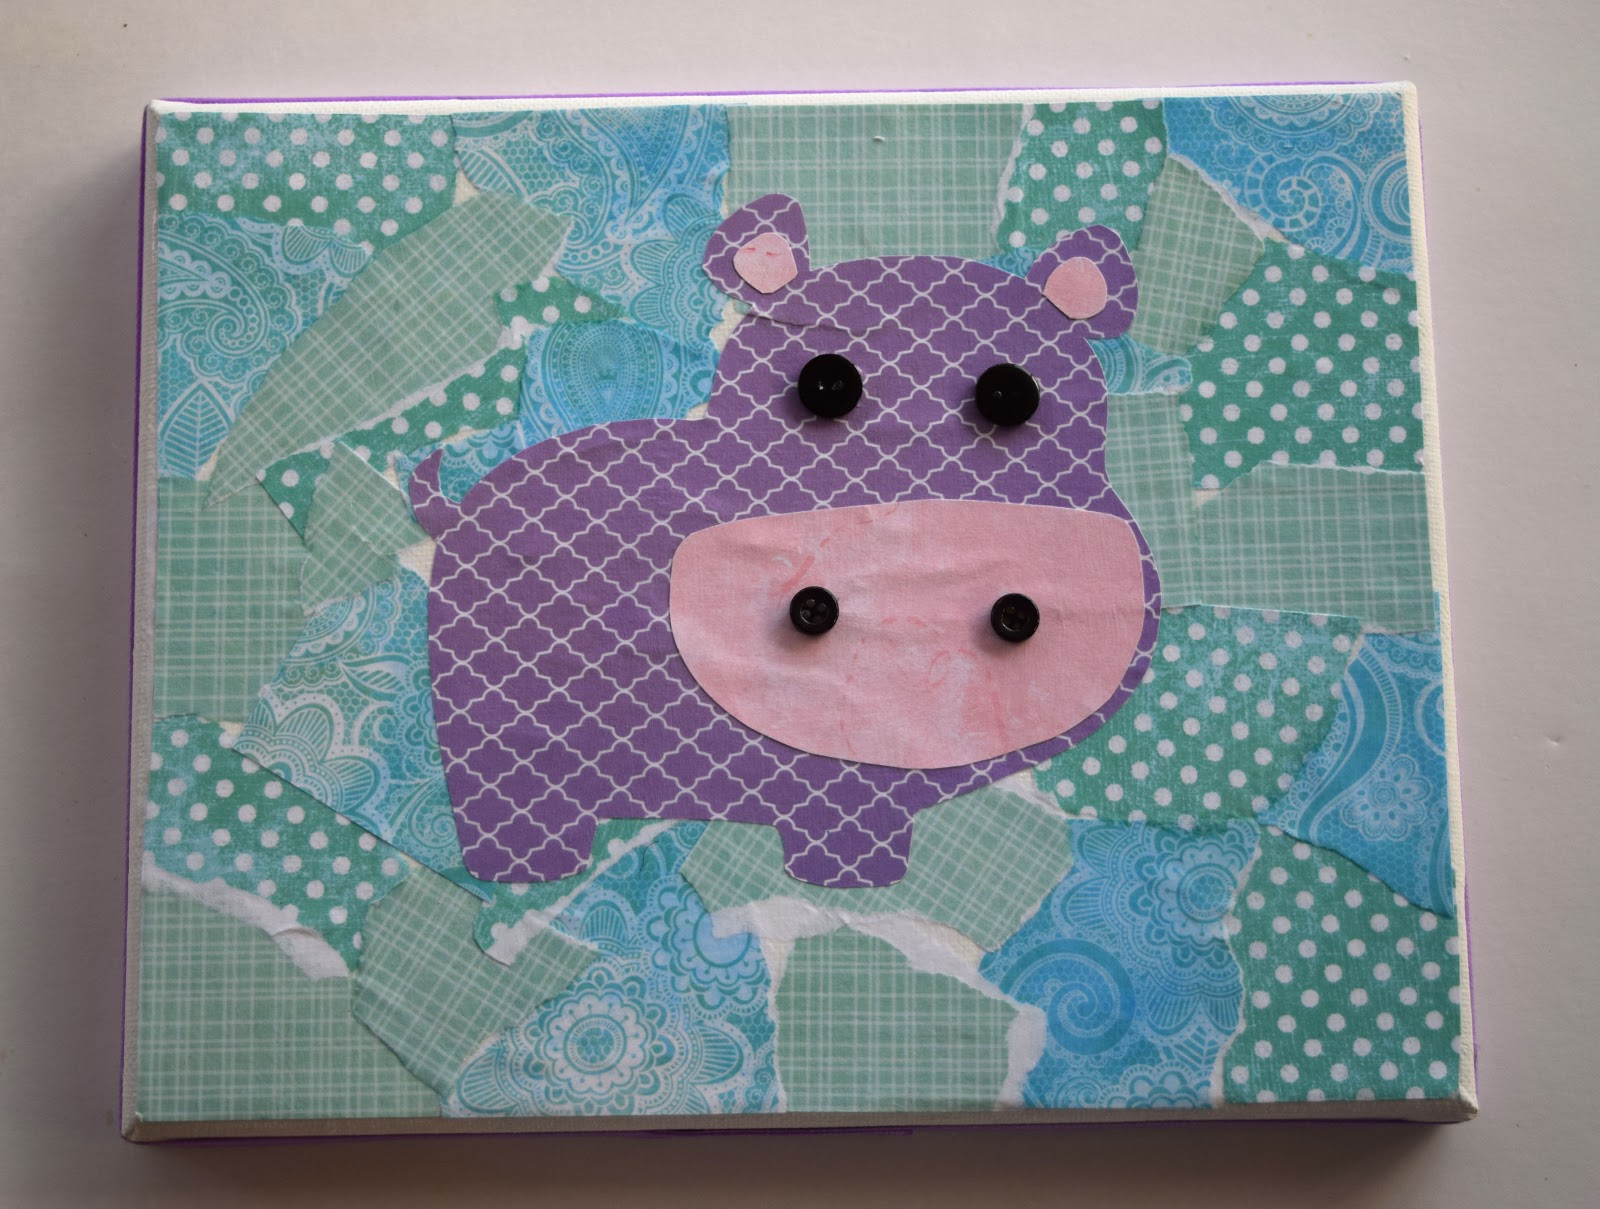 Scrapbook paper craft ideas - I Suppose It Would Work With A Single Piece Of Paper But It Definitely Would Not Be As Cute